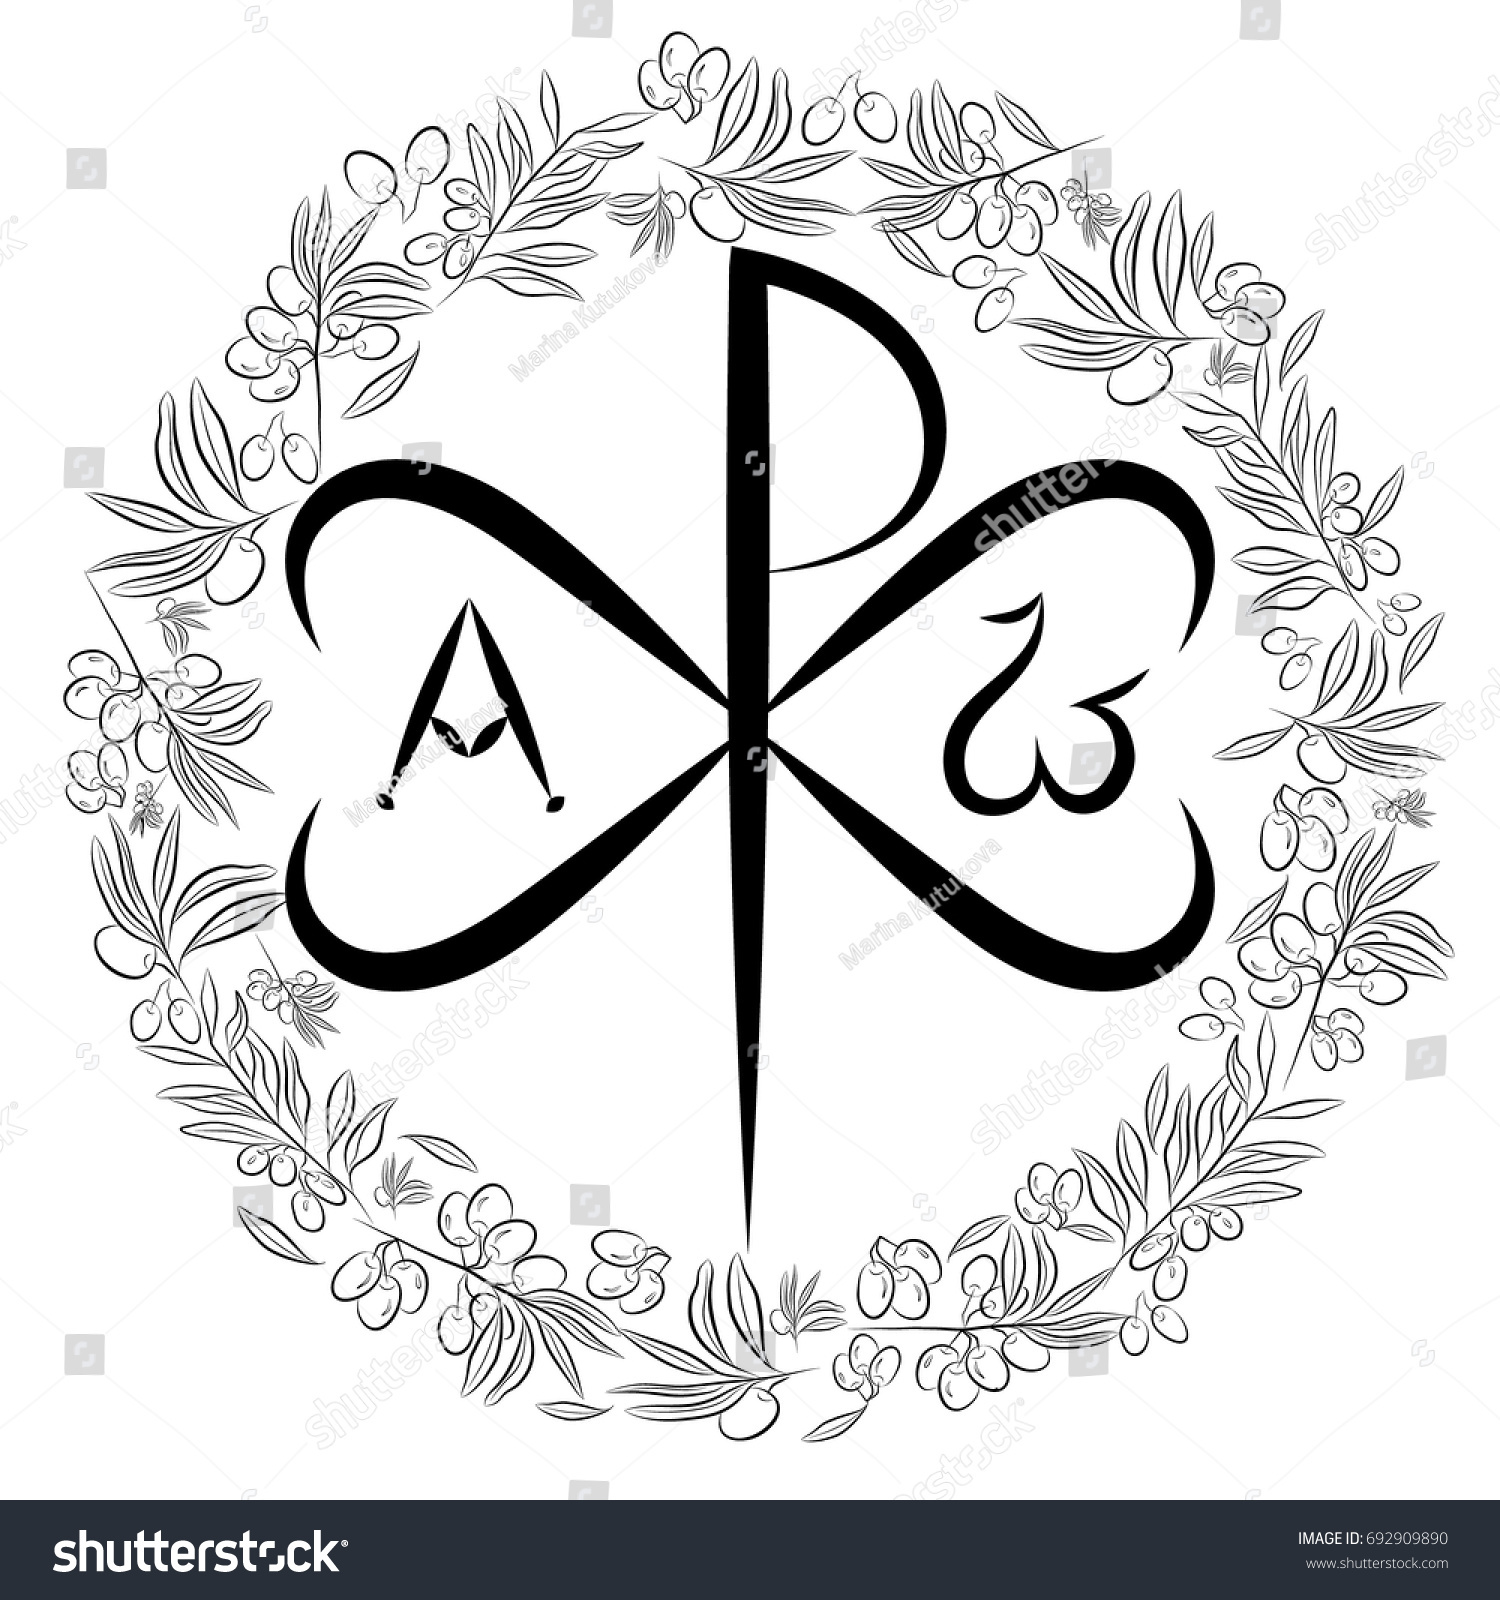 Chi ro chrisma chrismon monogram name stock vector 692909890 monogram of the name of christ i am biocorpaavc Images